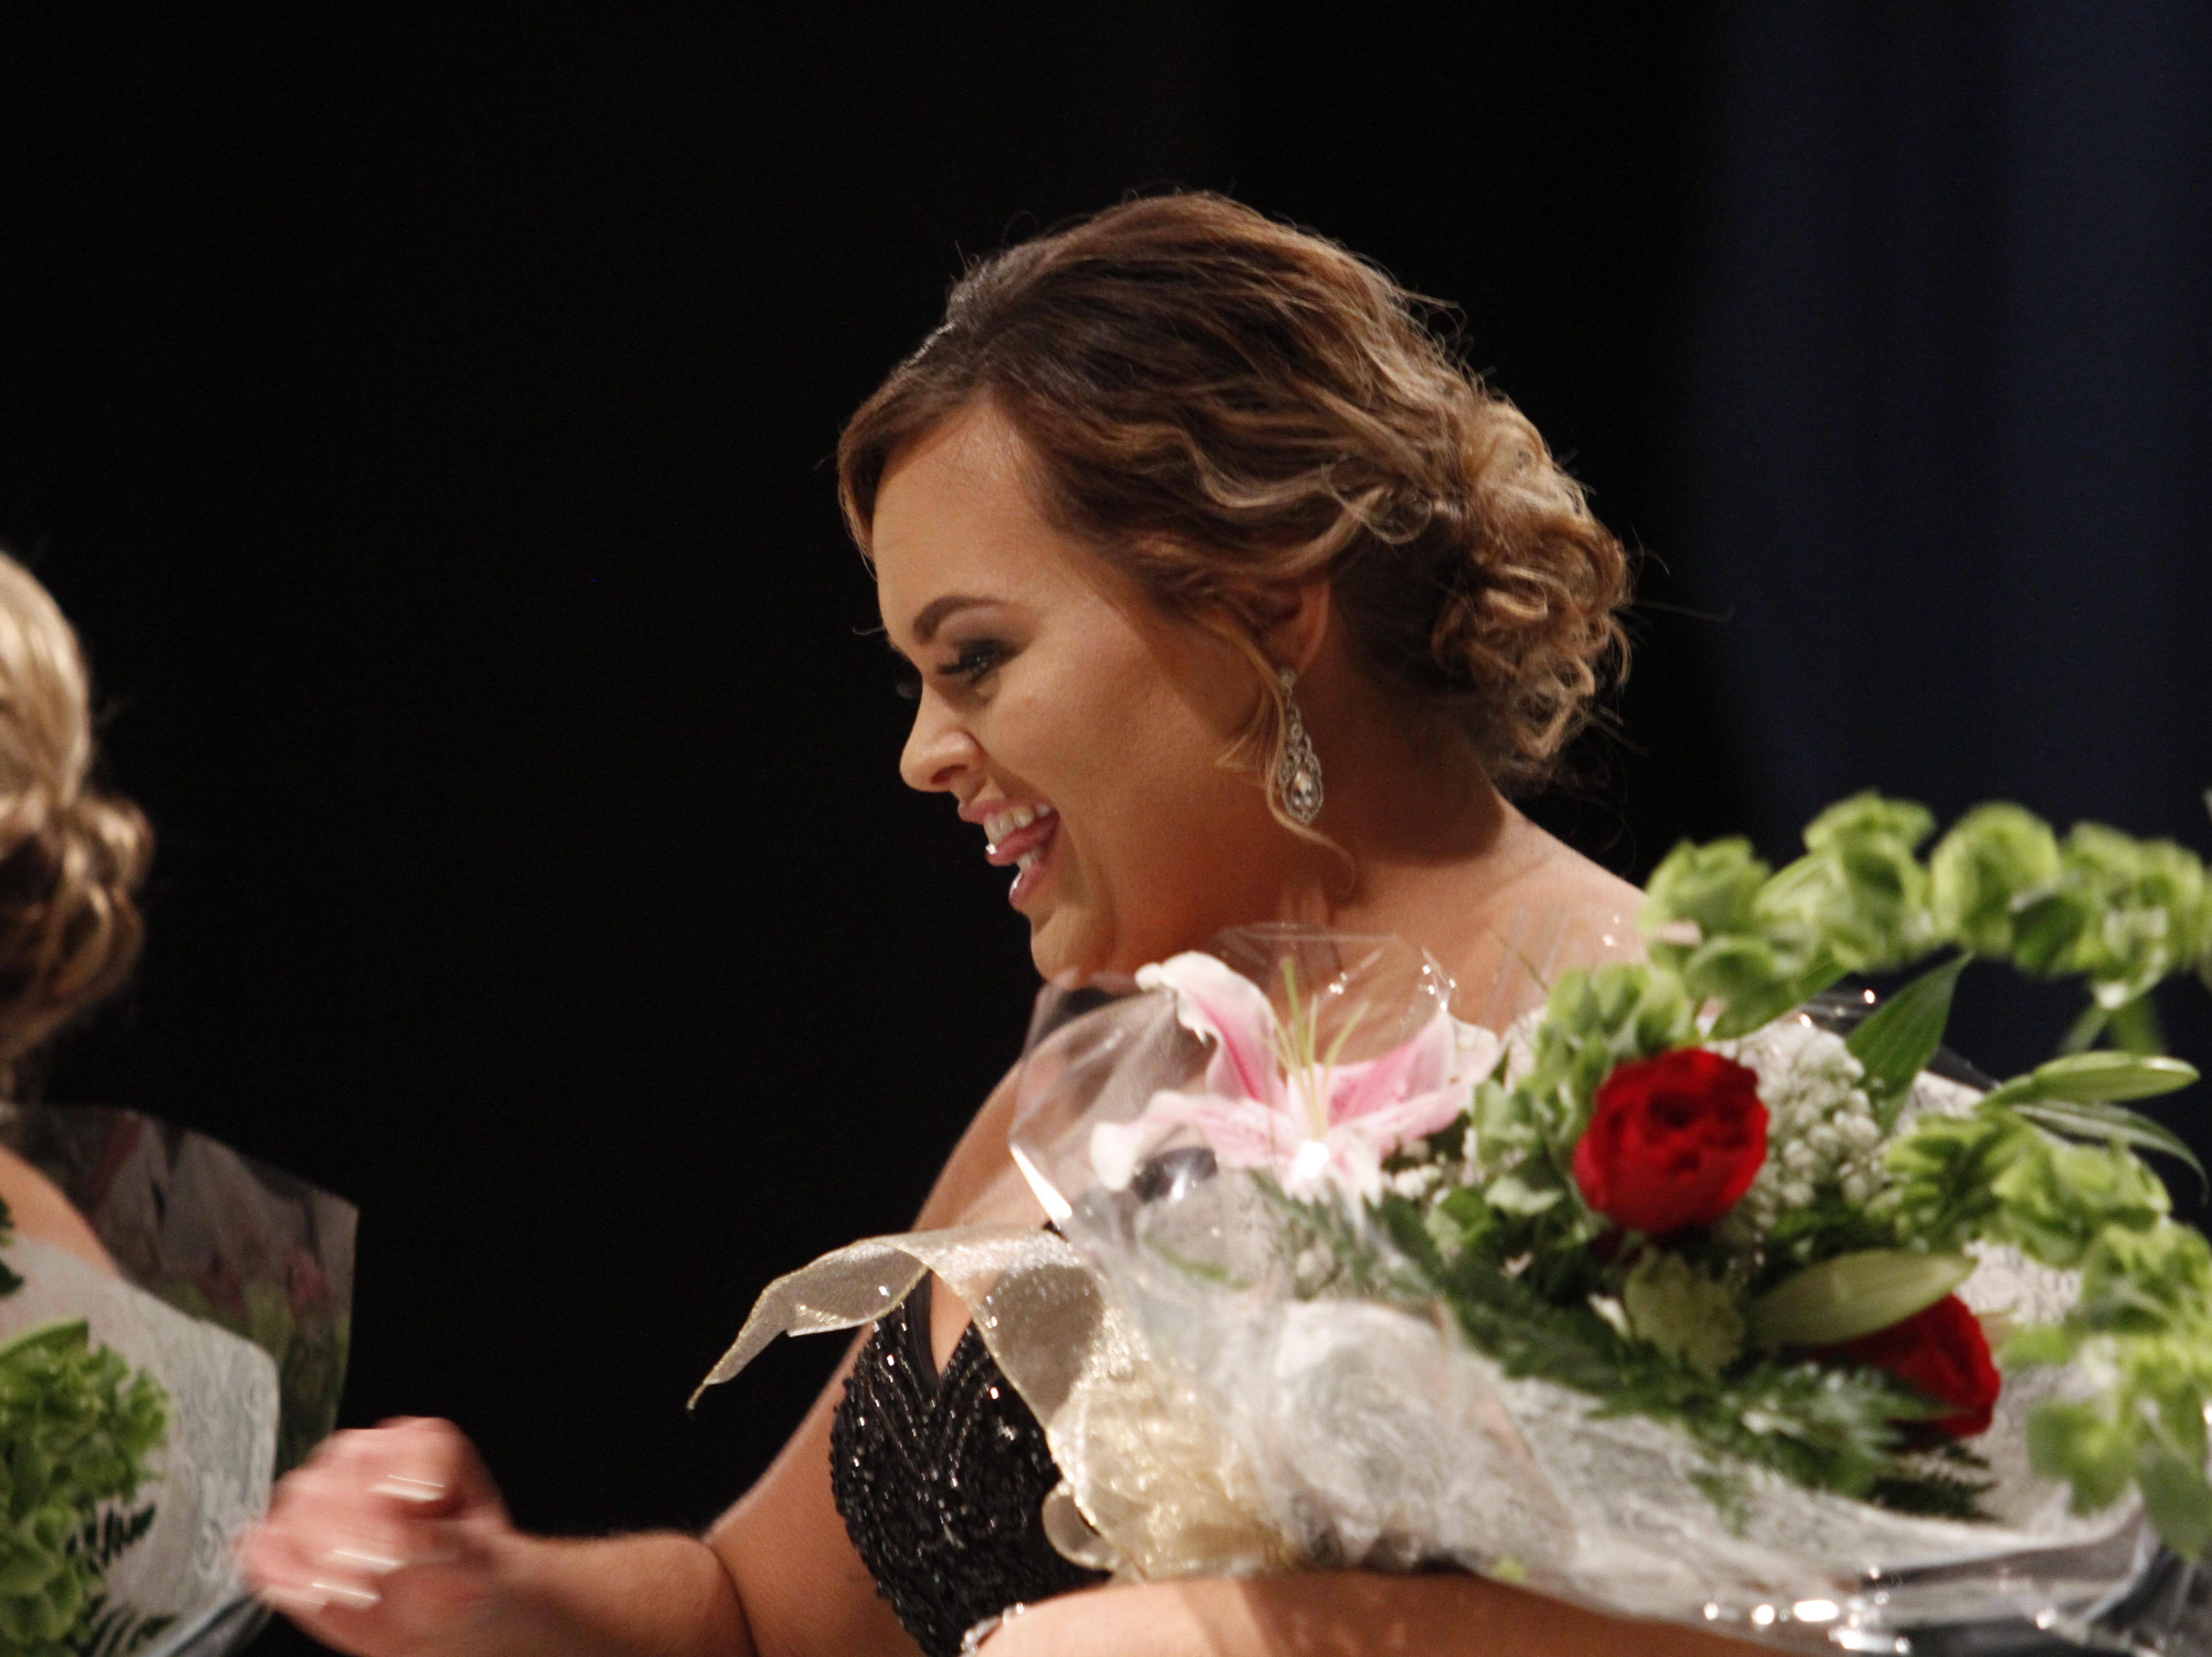 Ashley Dunavant Adkins, first runner-up in the 2019 Ms. Houston County competition on Saturday, March 9, 2019.